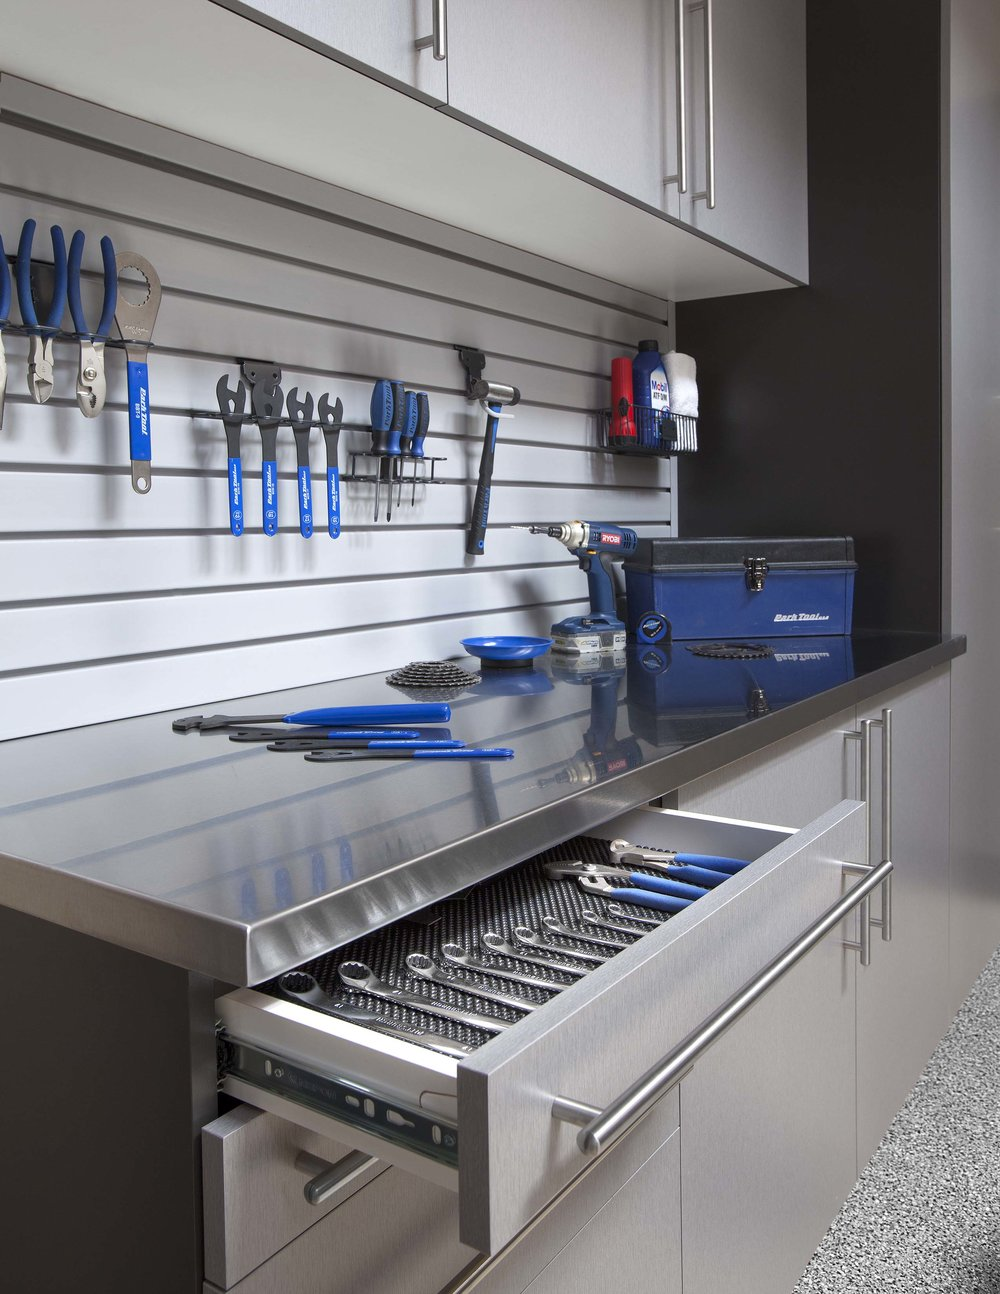 Protect valuable tools and equipment with custom tool storage. Pictured: Dove grey garage cabinets with custom drawer pulls, stainless steel countertop, slatwall storage and custom tool chest.